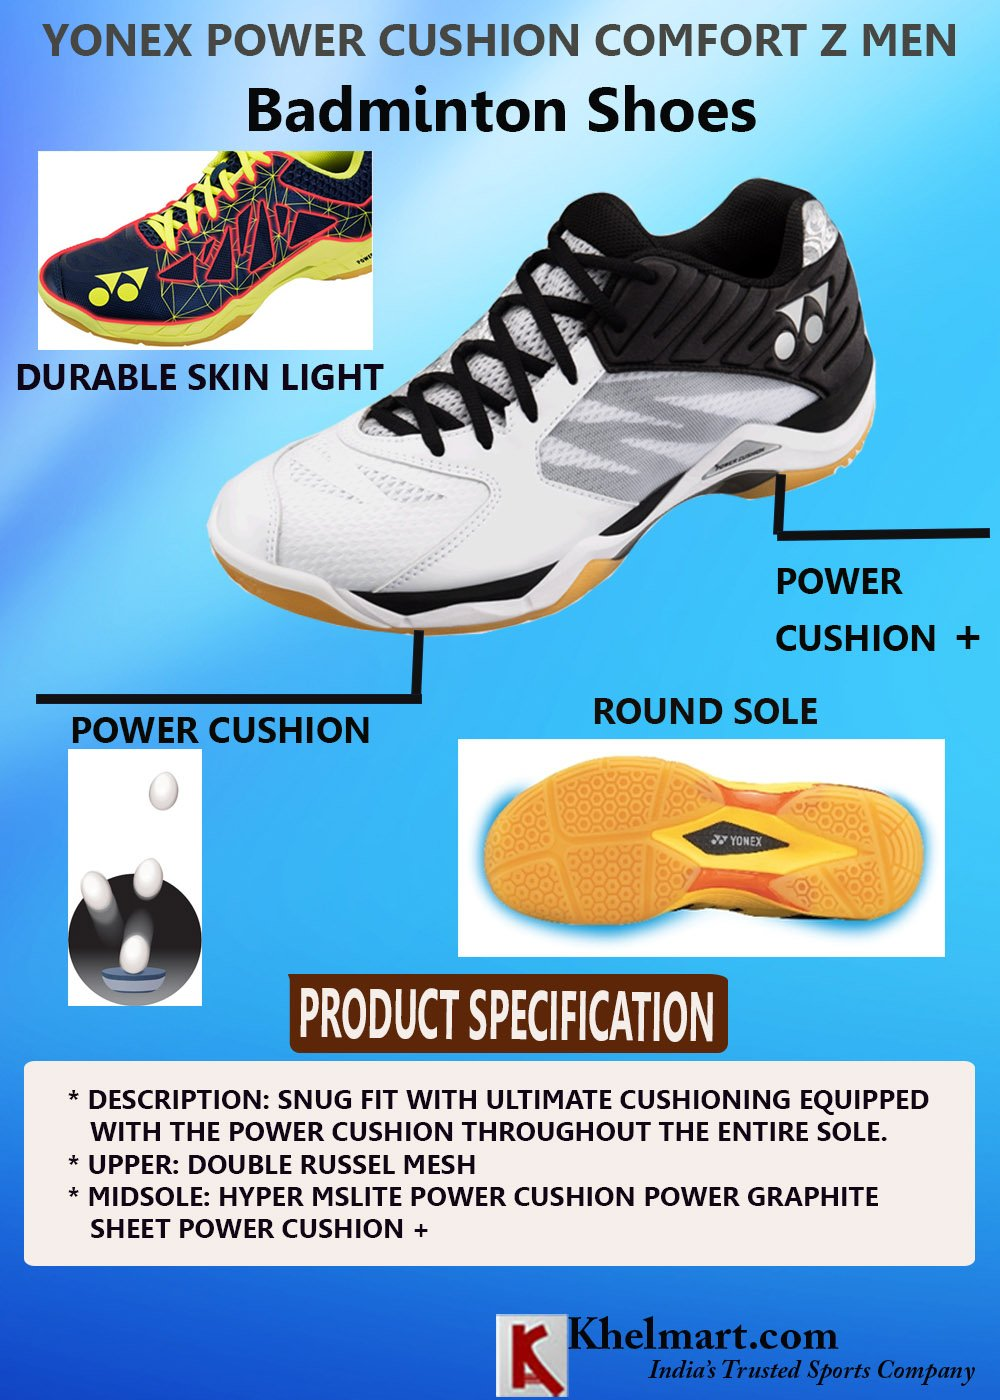 YONEX POWER CUSHION COMFORT Z MEN_5.jpg